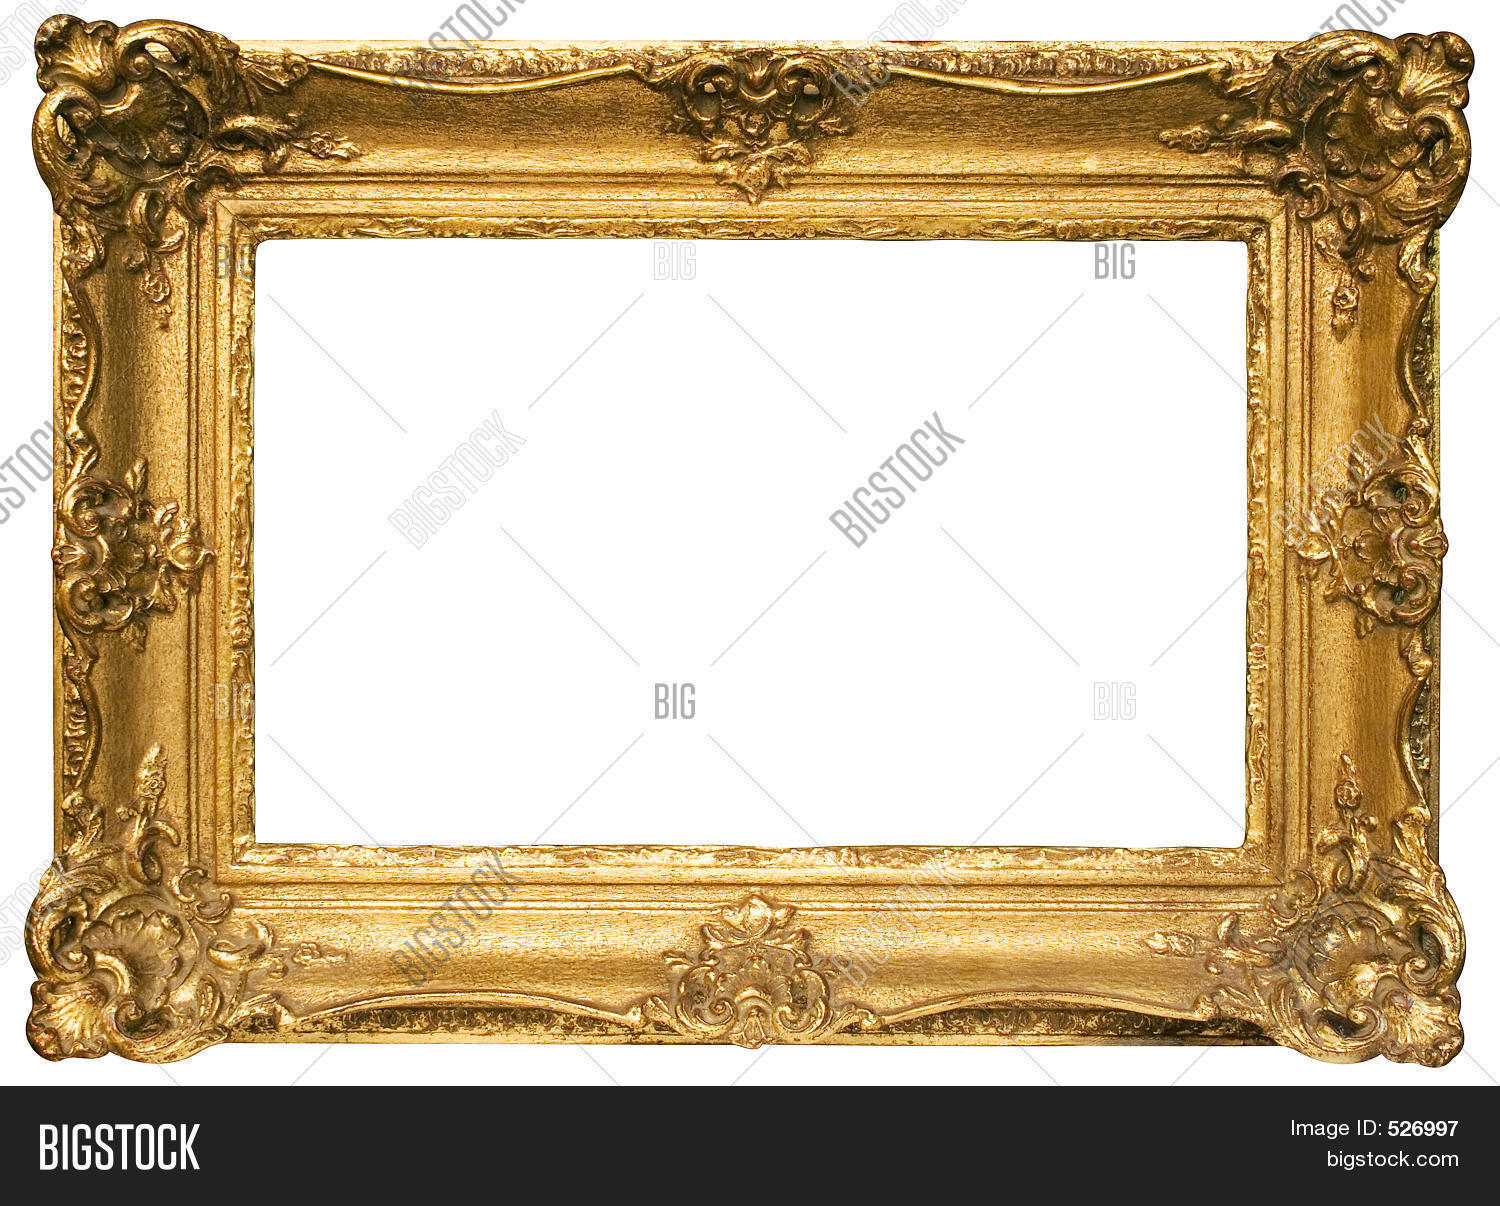 Gold Plated Wooden Image & Photo (Free Trial) | Bigstock